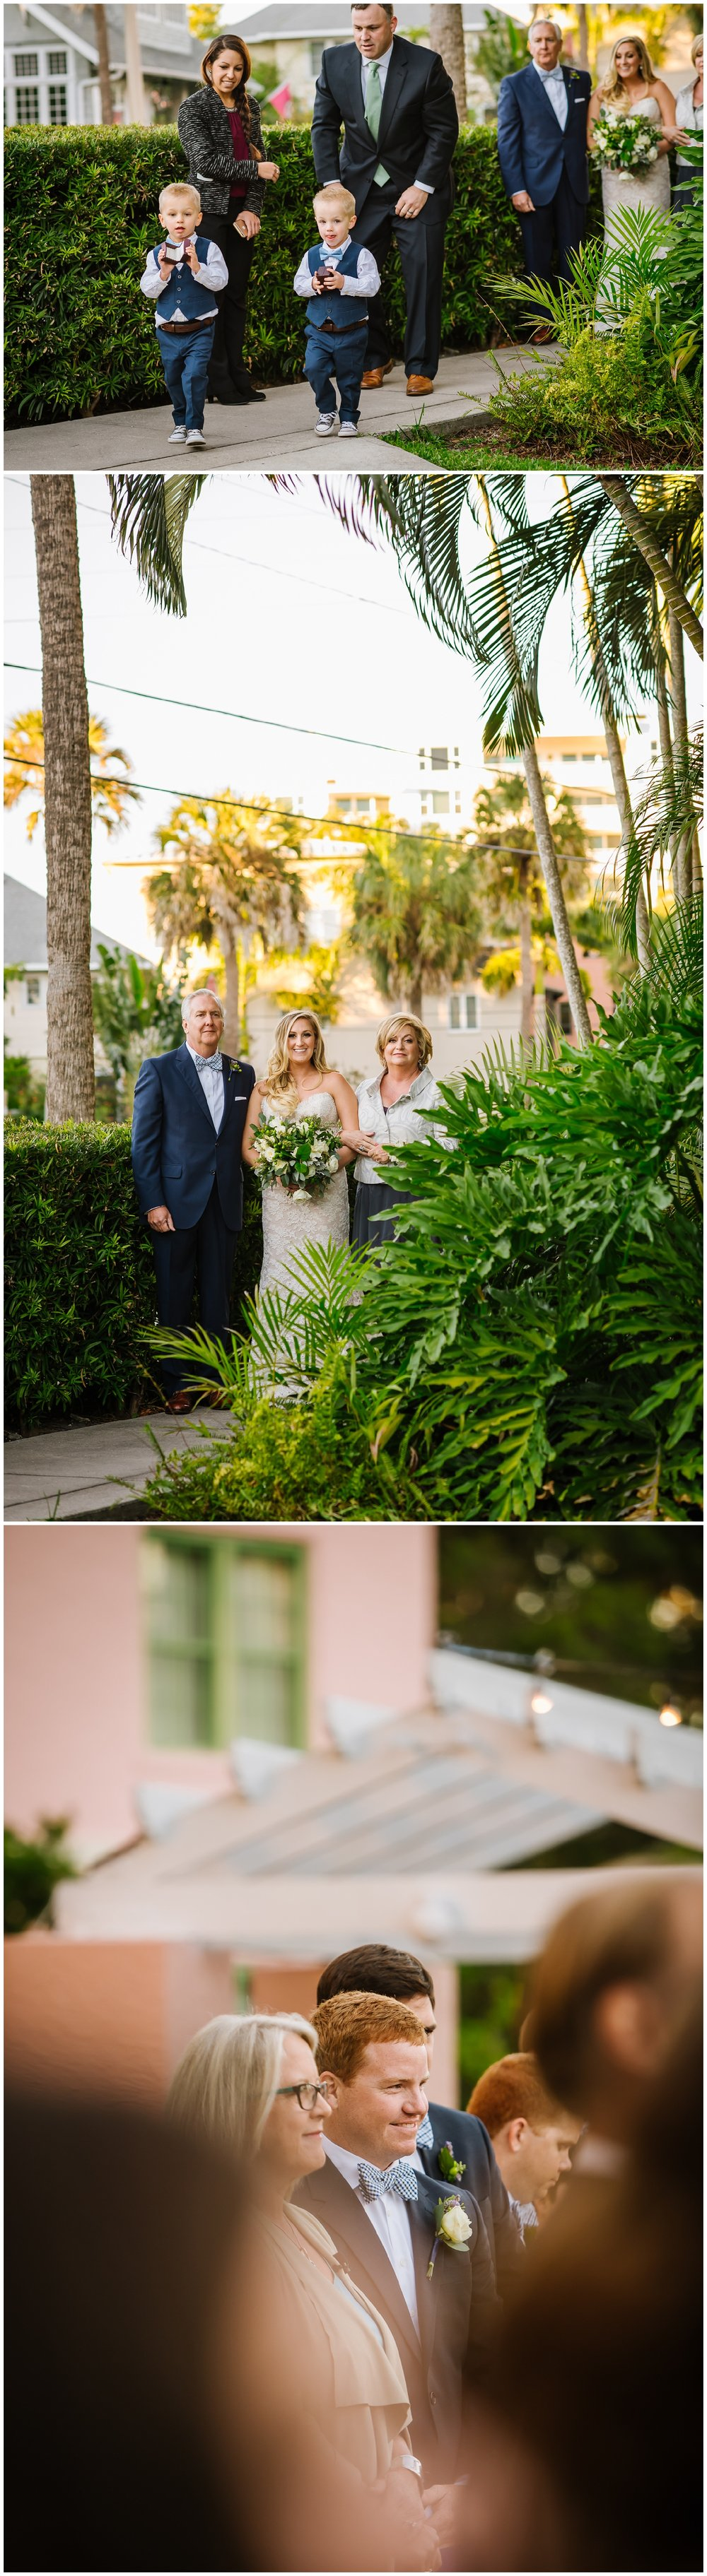 St-pete-wedding-photographer-grand-ballroom-vinoy-tea-garden-greek-luxury_0156.jpg